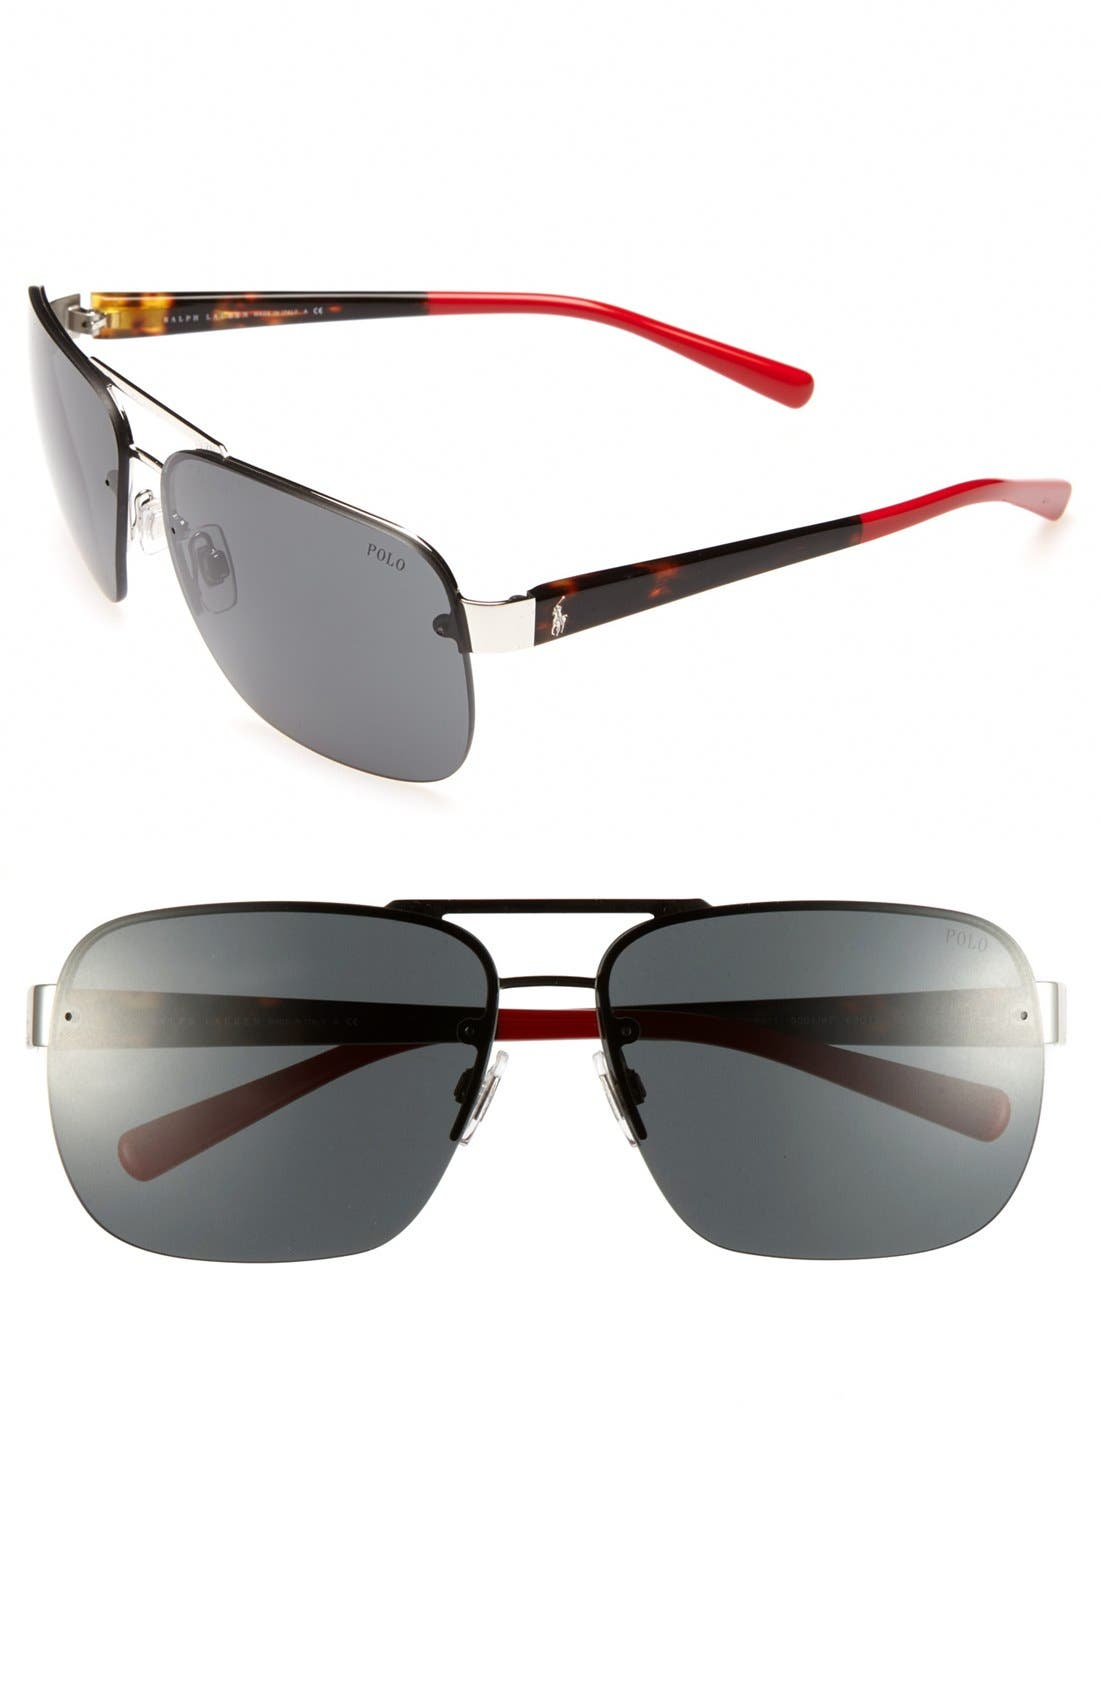 Main Image - Polo Ralph Lauren 'Color End' 62mm Sunglasses